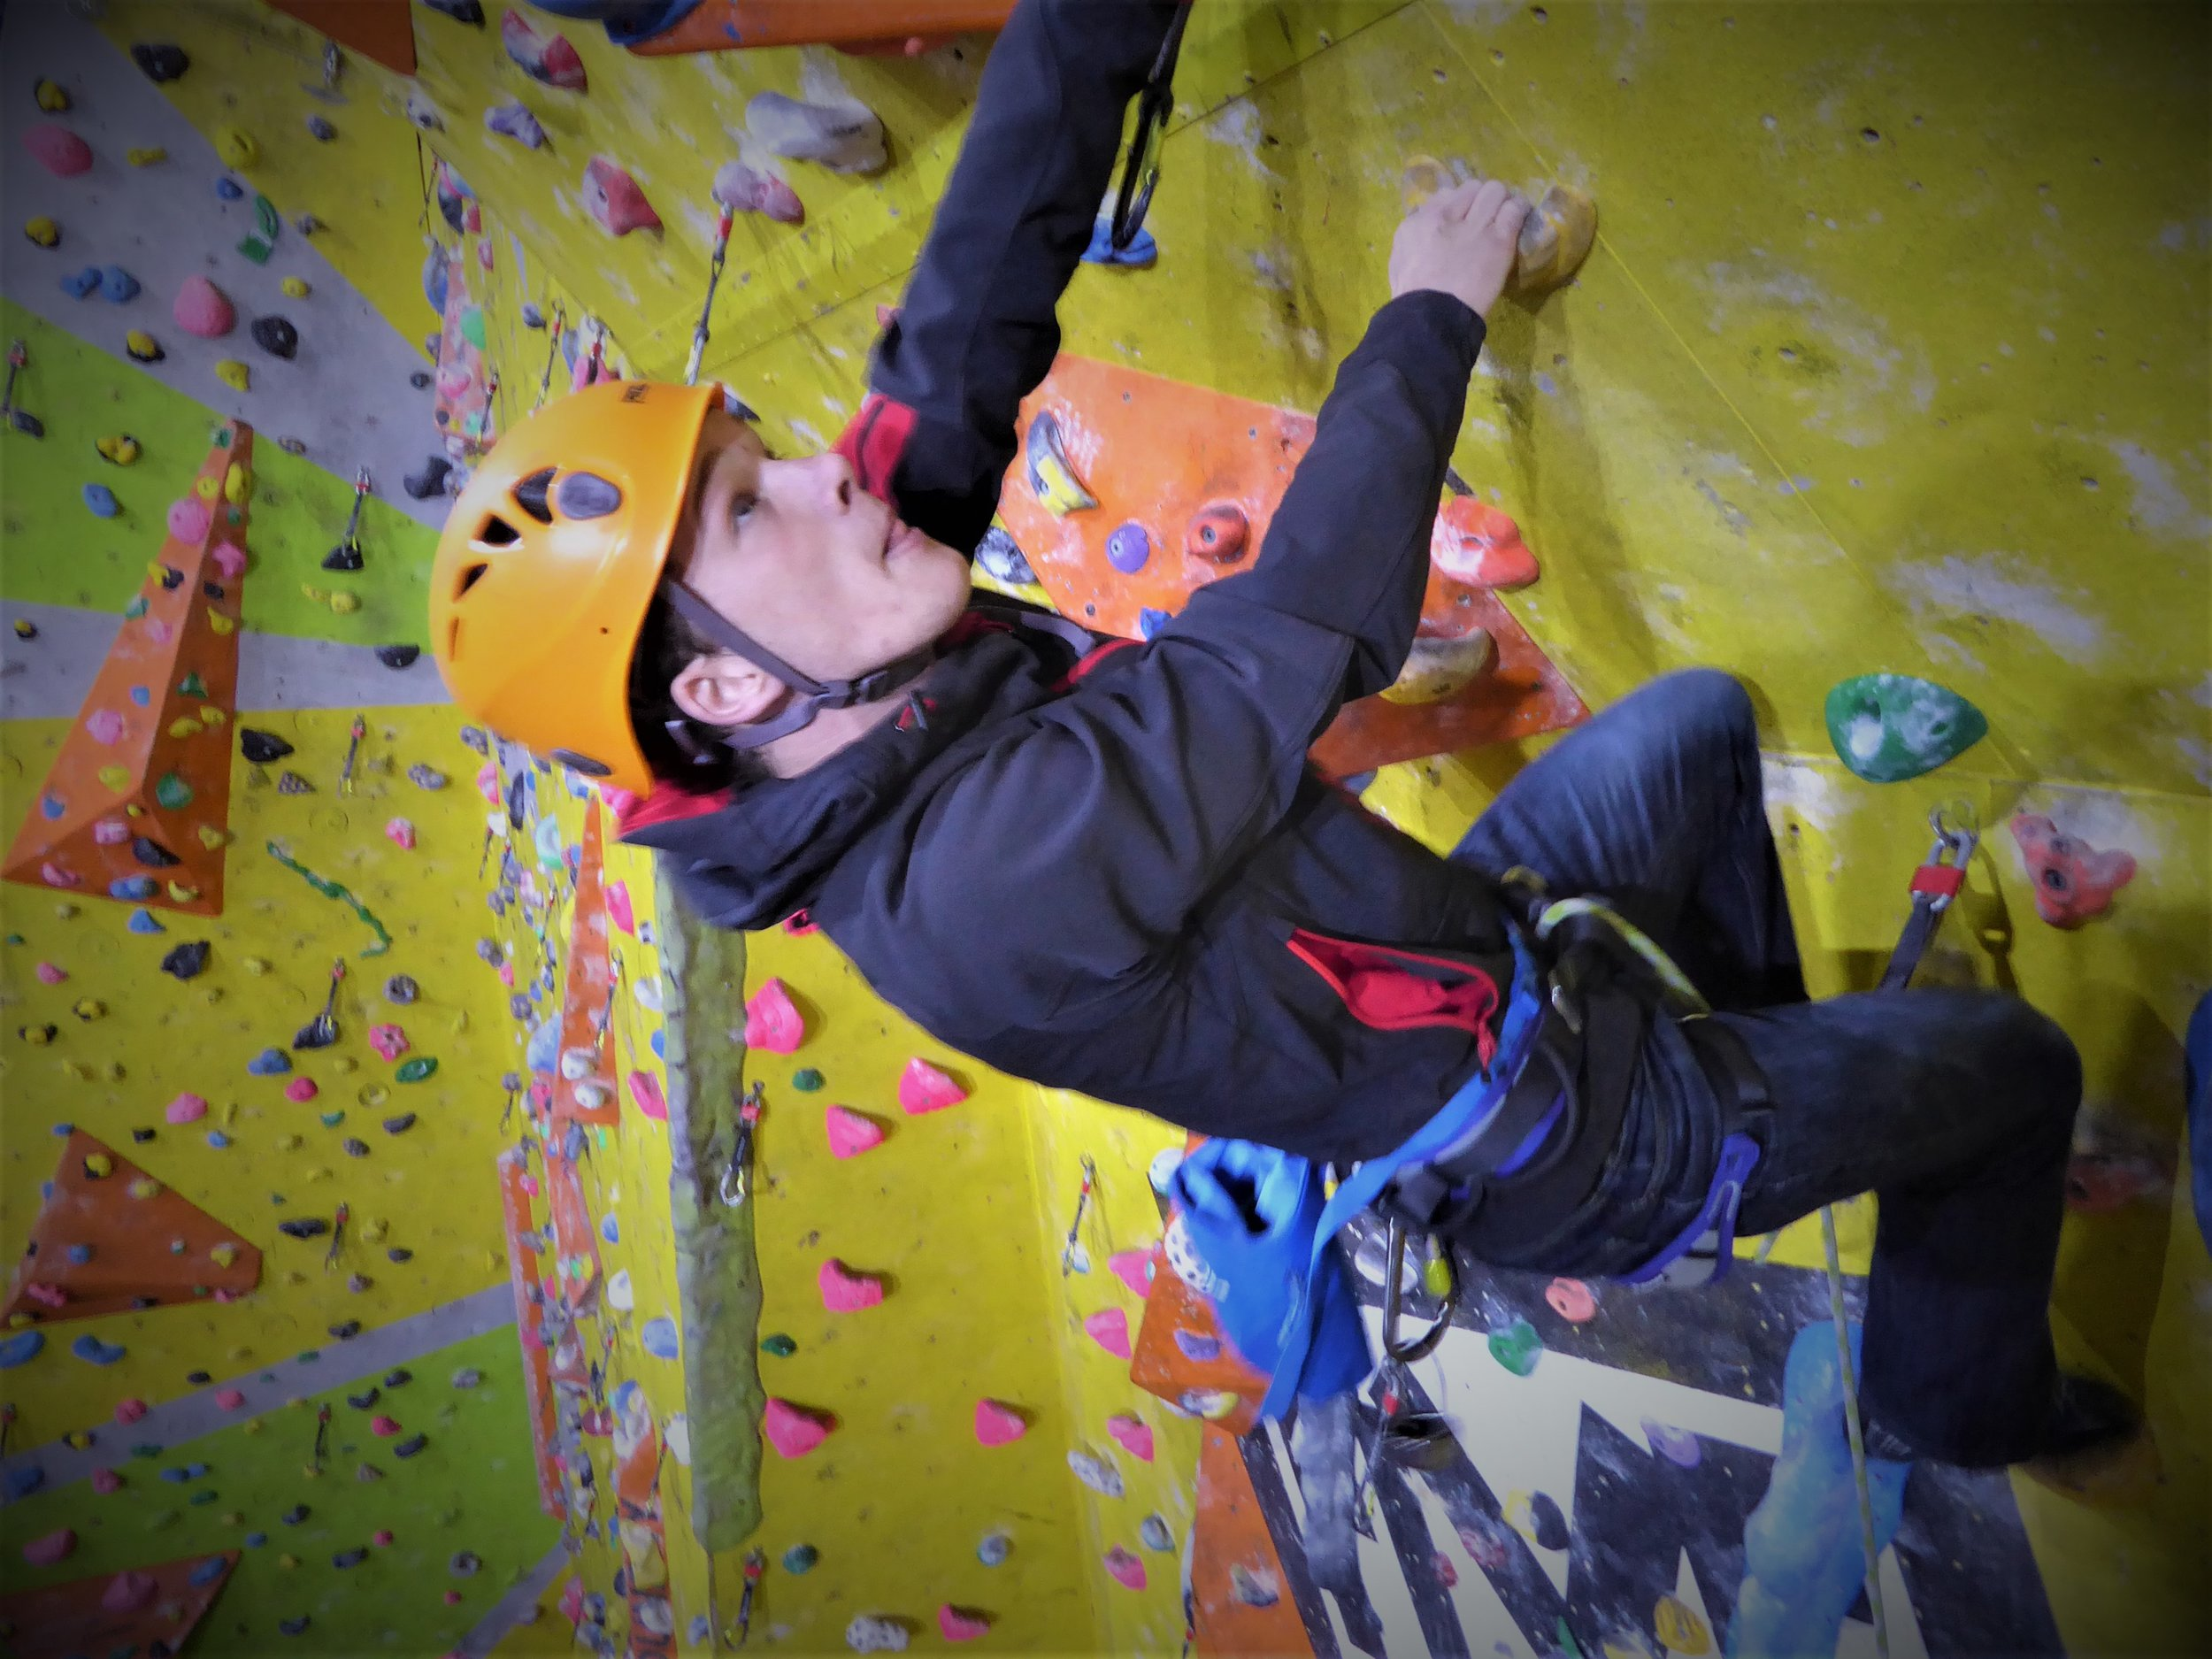 Young Leaders Club - £15 per person per sessionAges 13+ (Must already be competent in top rope climbing)Saturday 15:15-17:15Safe & easy clipping.Lead belaying.Rope management.Risk identification and management.Practice falling & holding falls.